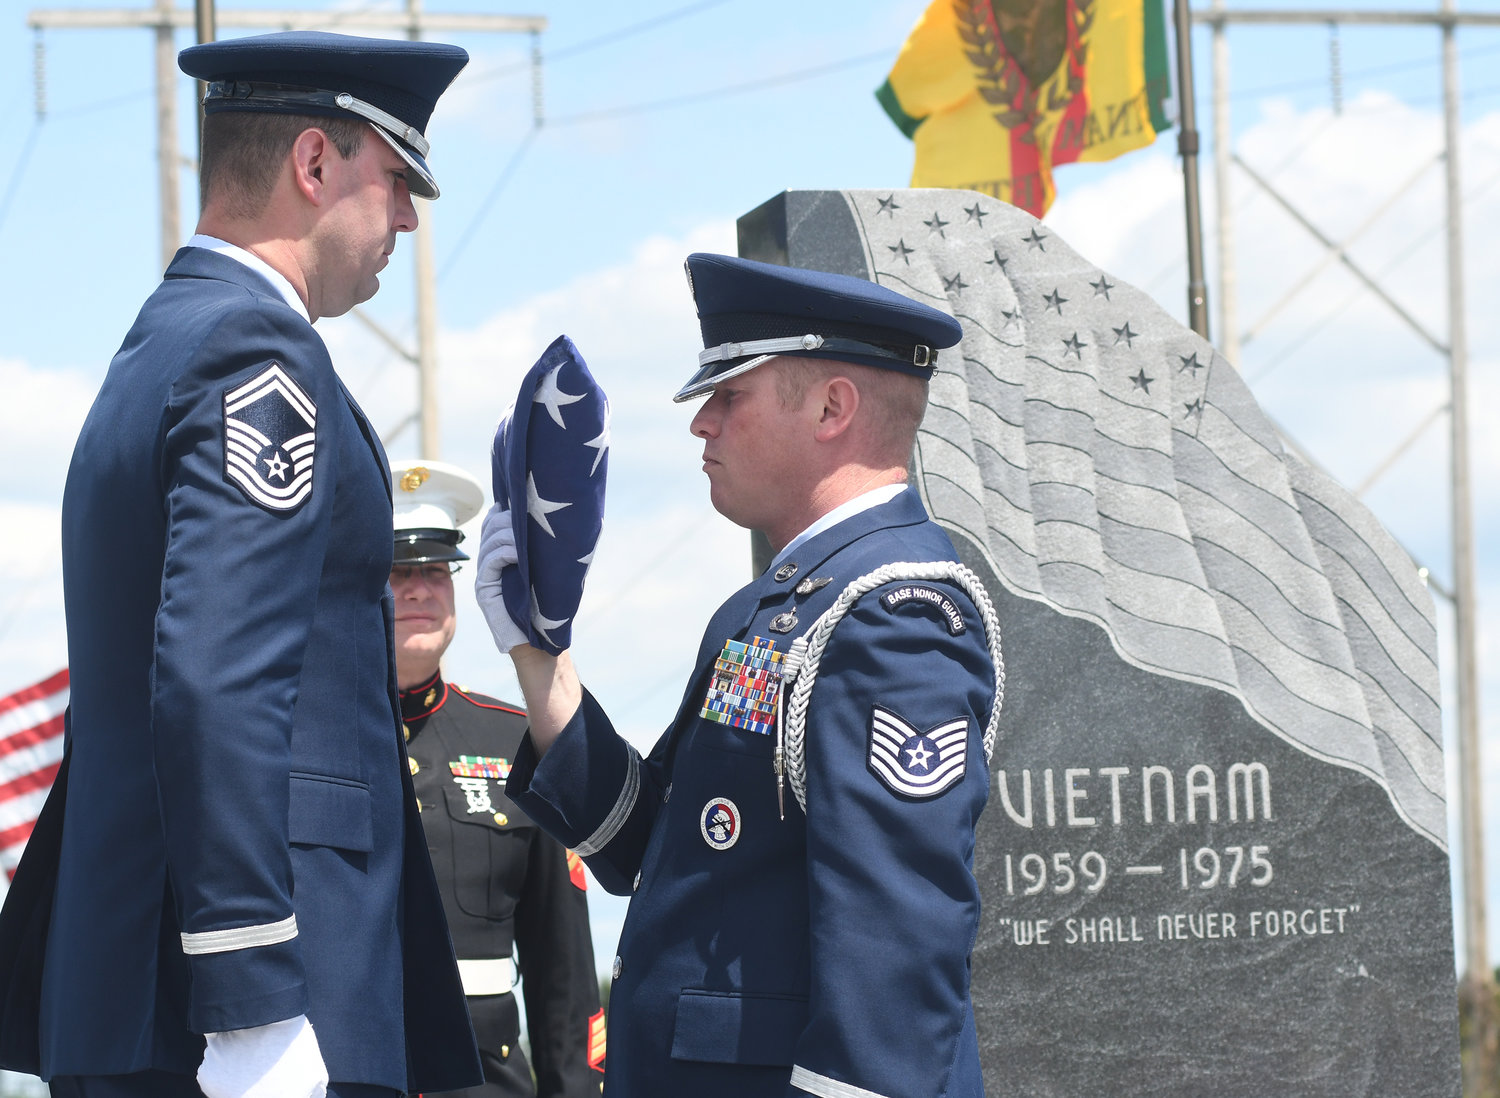 SMSgt Thomas L. Whiteman is presented the folded American flag from TSgt Lee R. Settle during the Vietnam Memorial dedication ceremony.